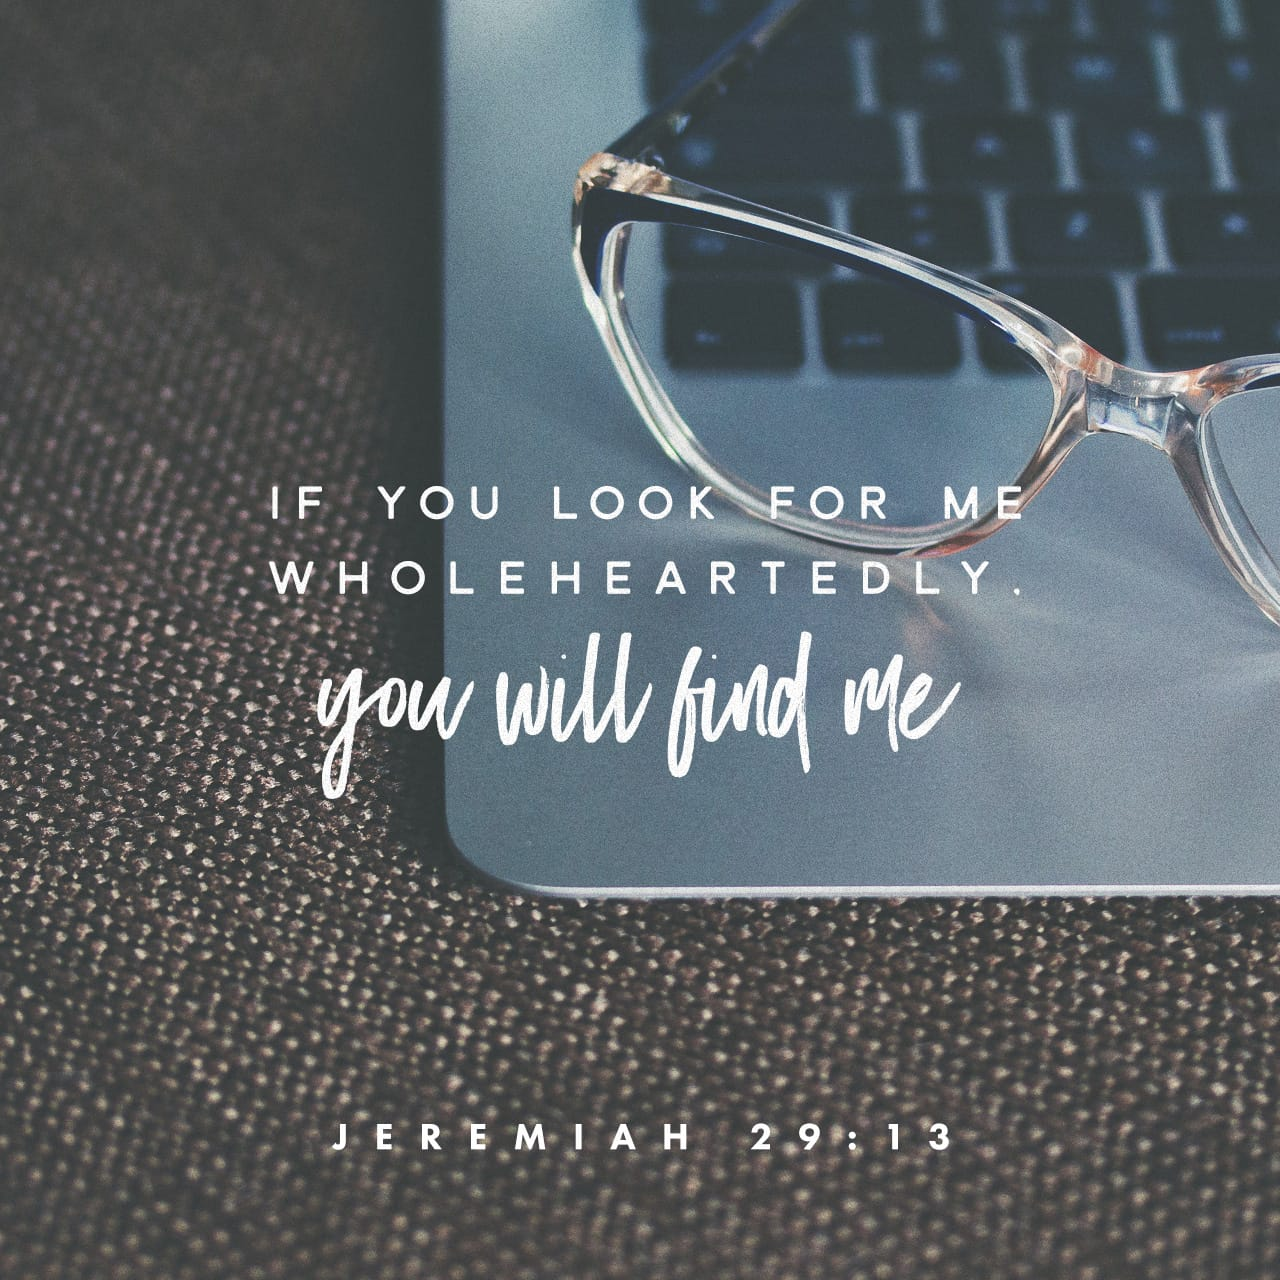 Jeremiah 29:12-13 Then you will call upon Me and go and pray to Me, and I will listen to you. And you will seek Me and find Me, when you search for Me with all your heart. | New King James Version (NKJV)